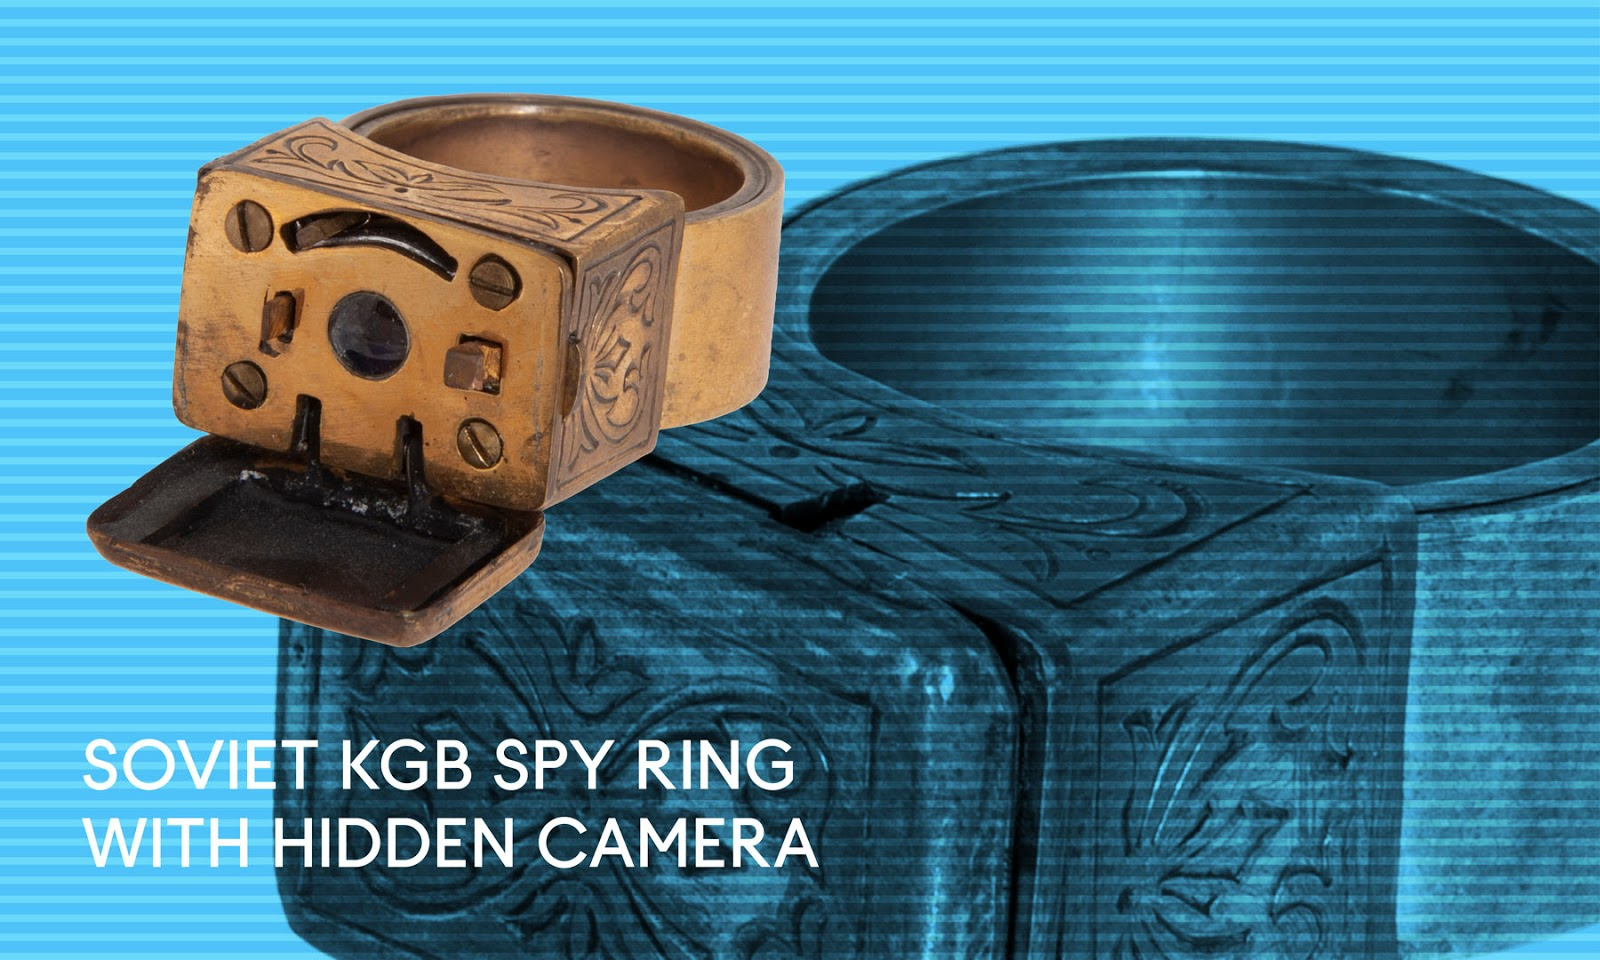 Spy ring with camera